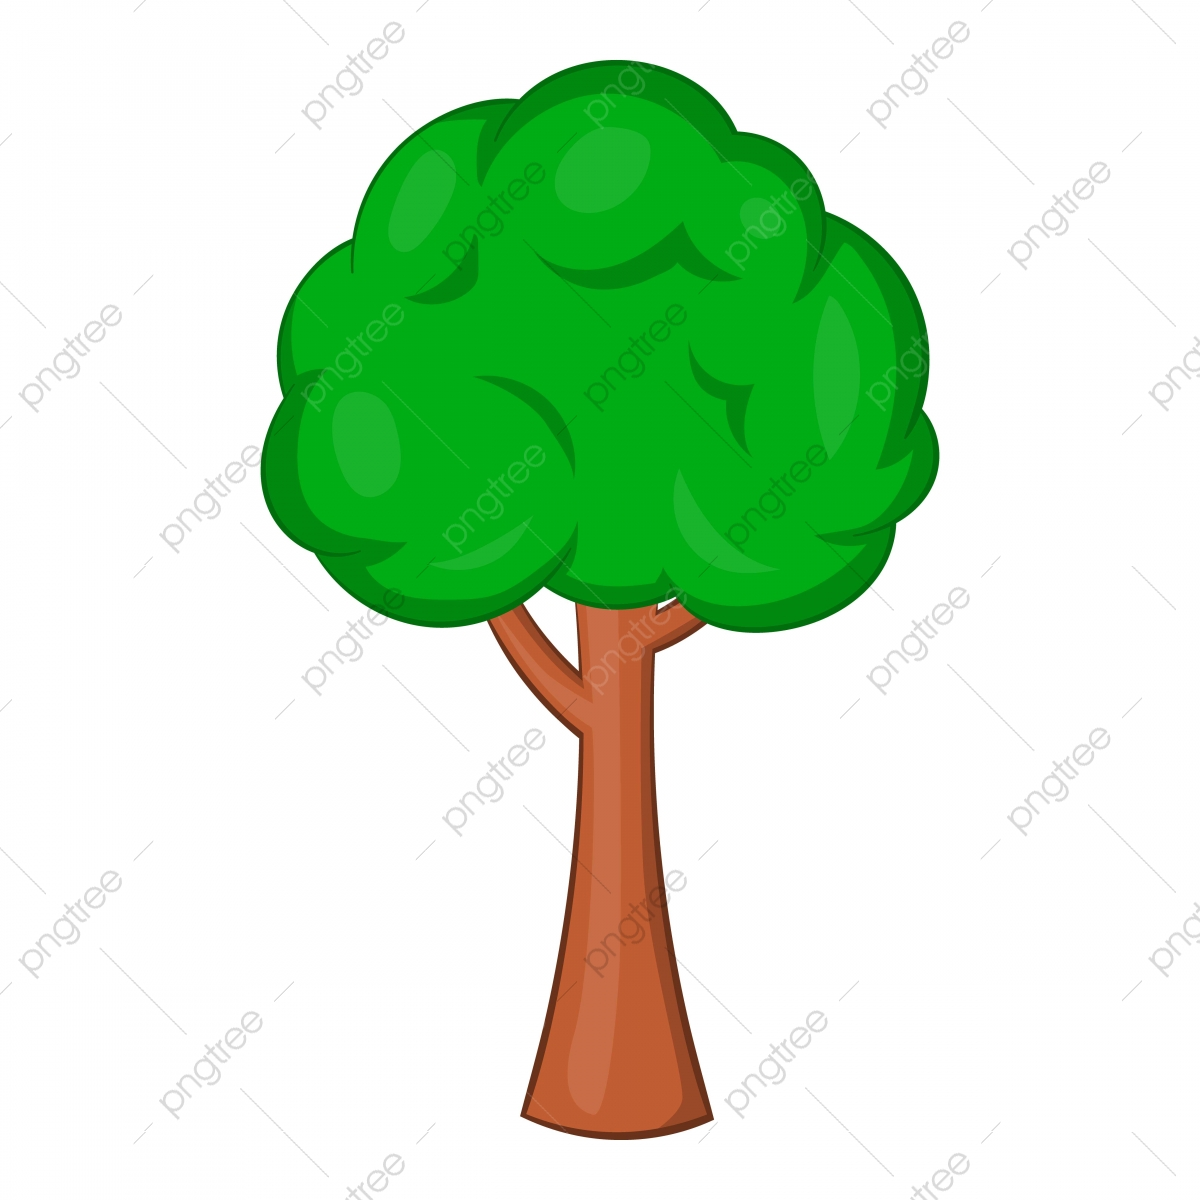 Tree Icon Cartoon Style Tree Icons Style Icons Cartoon Icons Png And Vector With Transparent Background For Free Download 103+ tree icon images for your graphic design, presentations, web design and other projects. https pngtree com freepng tree icon cartoon style 5202919 html